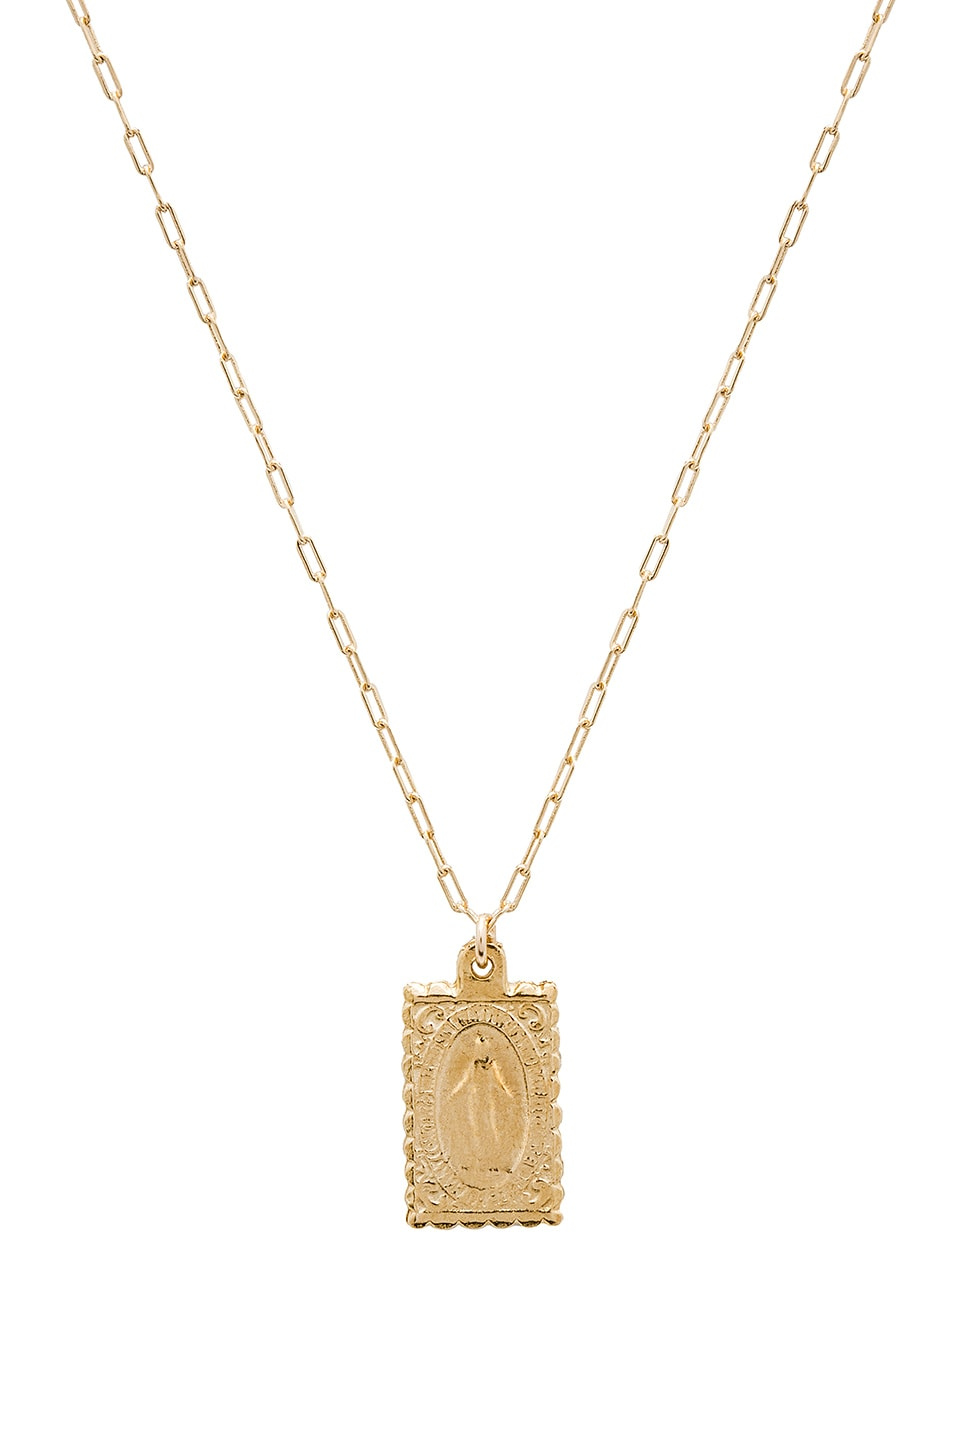 JOOLZ BY MARTHA CALVO Virgin Mary Pendant Necklace in Metallic Gold